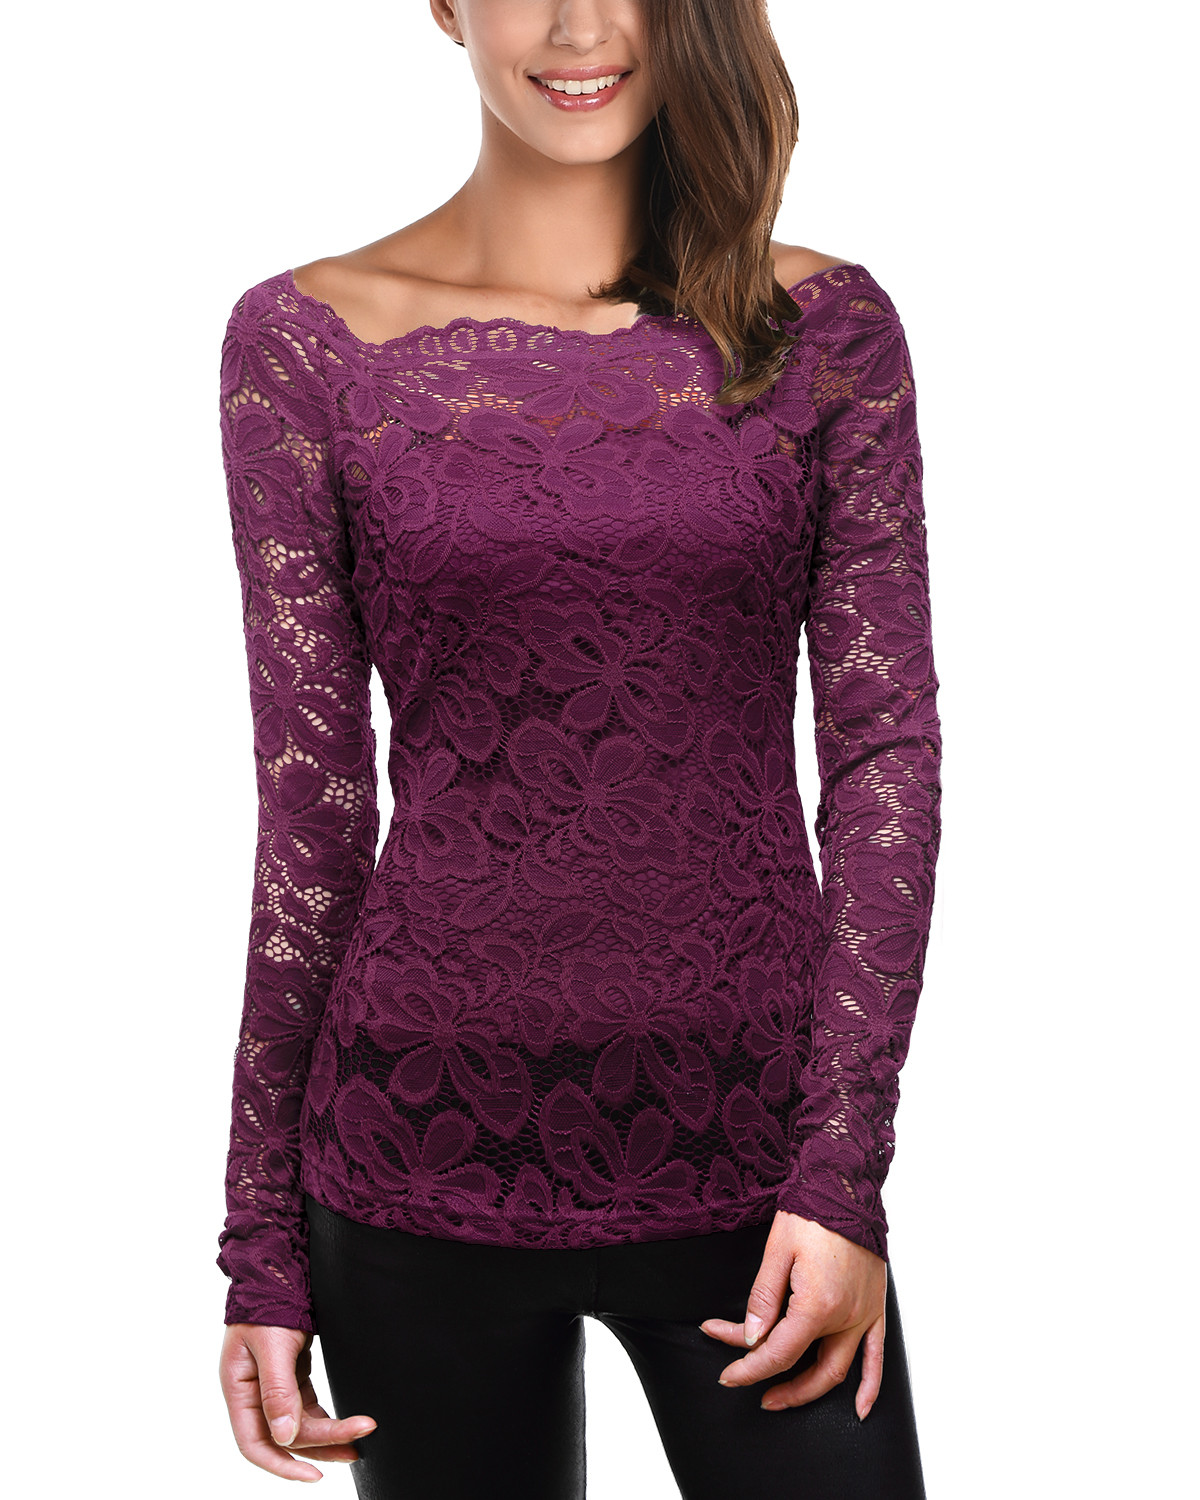 Women s Trendy Floral Lace Long Sleeves Tunic Tops Blouse